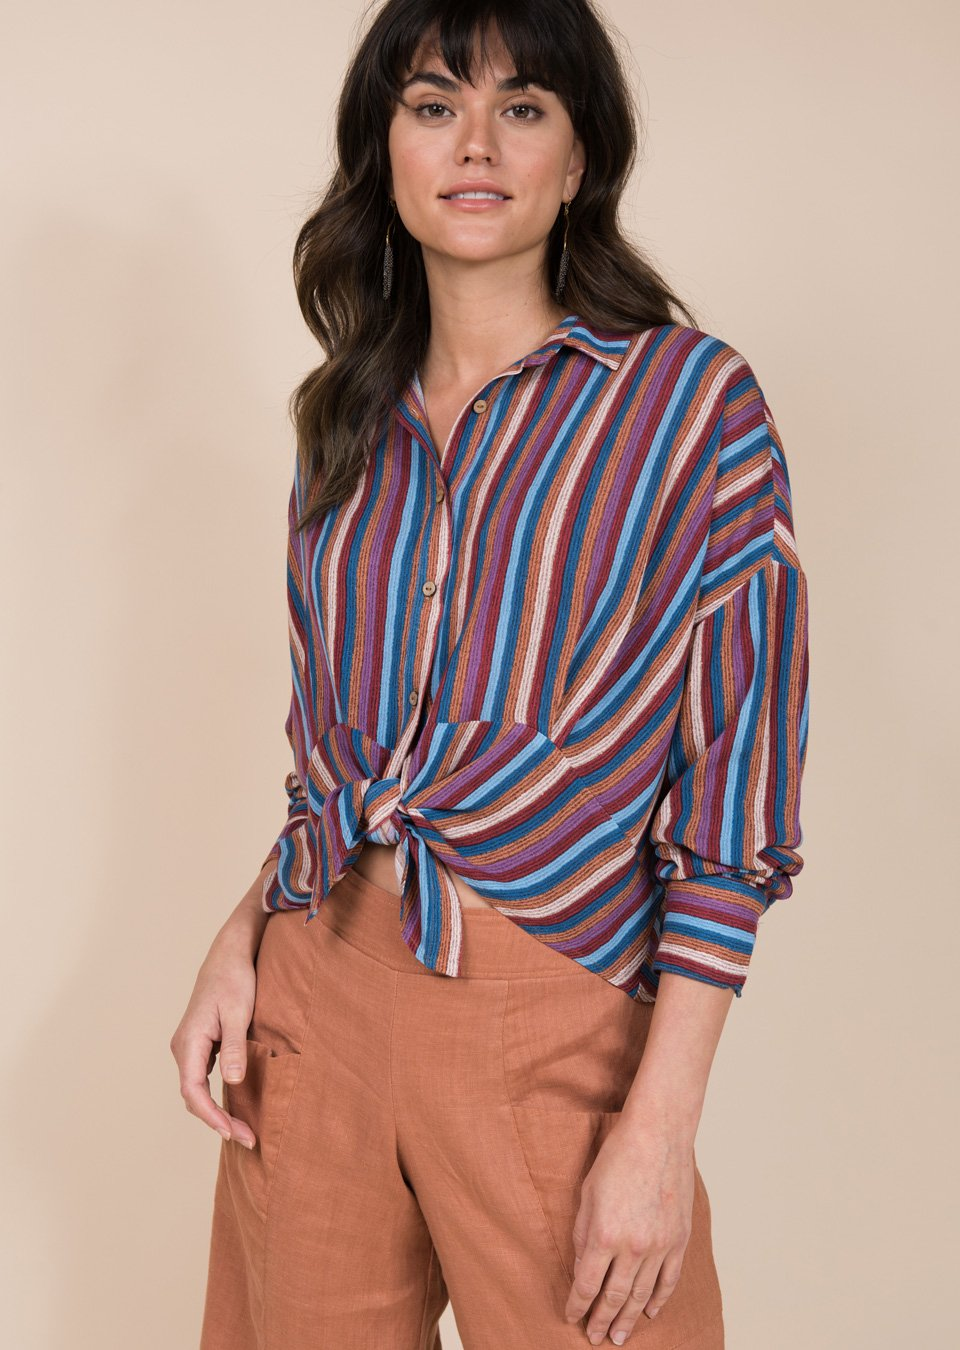 Striped Tie Front Top from Ivy Jane